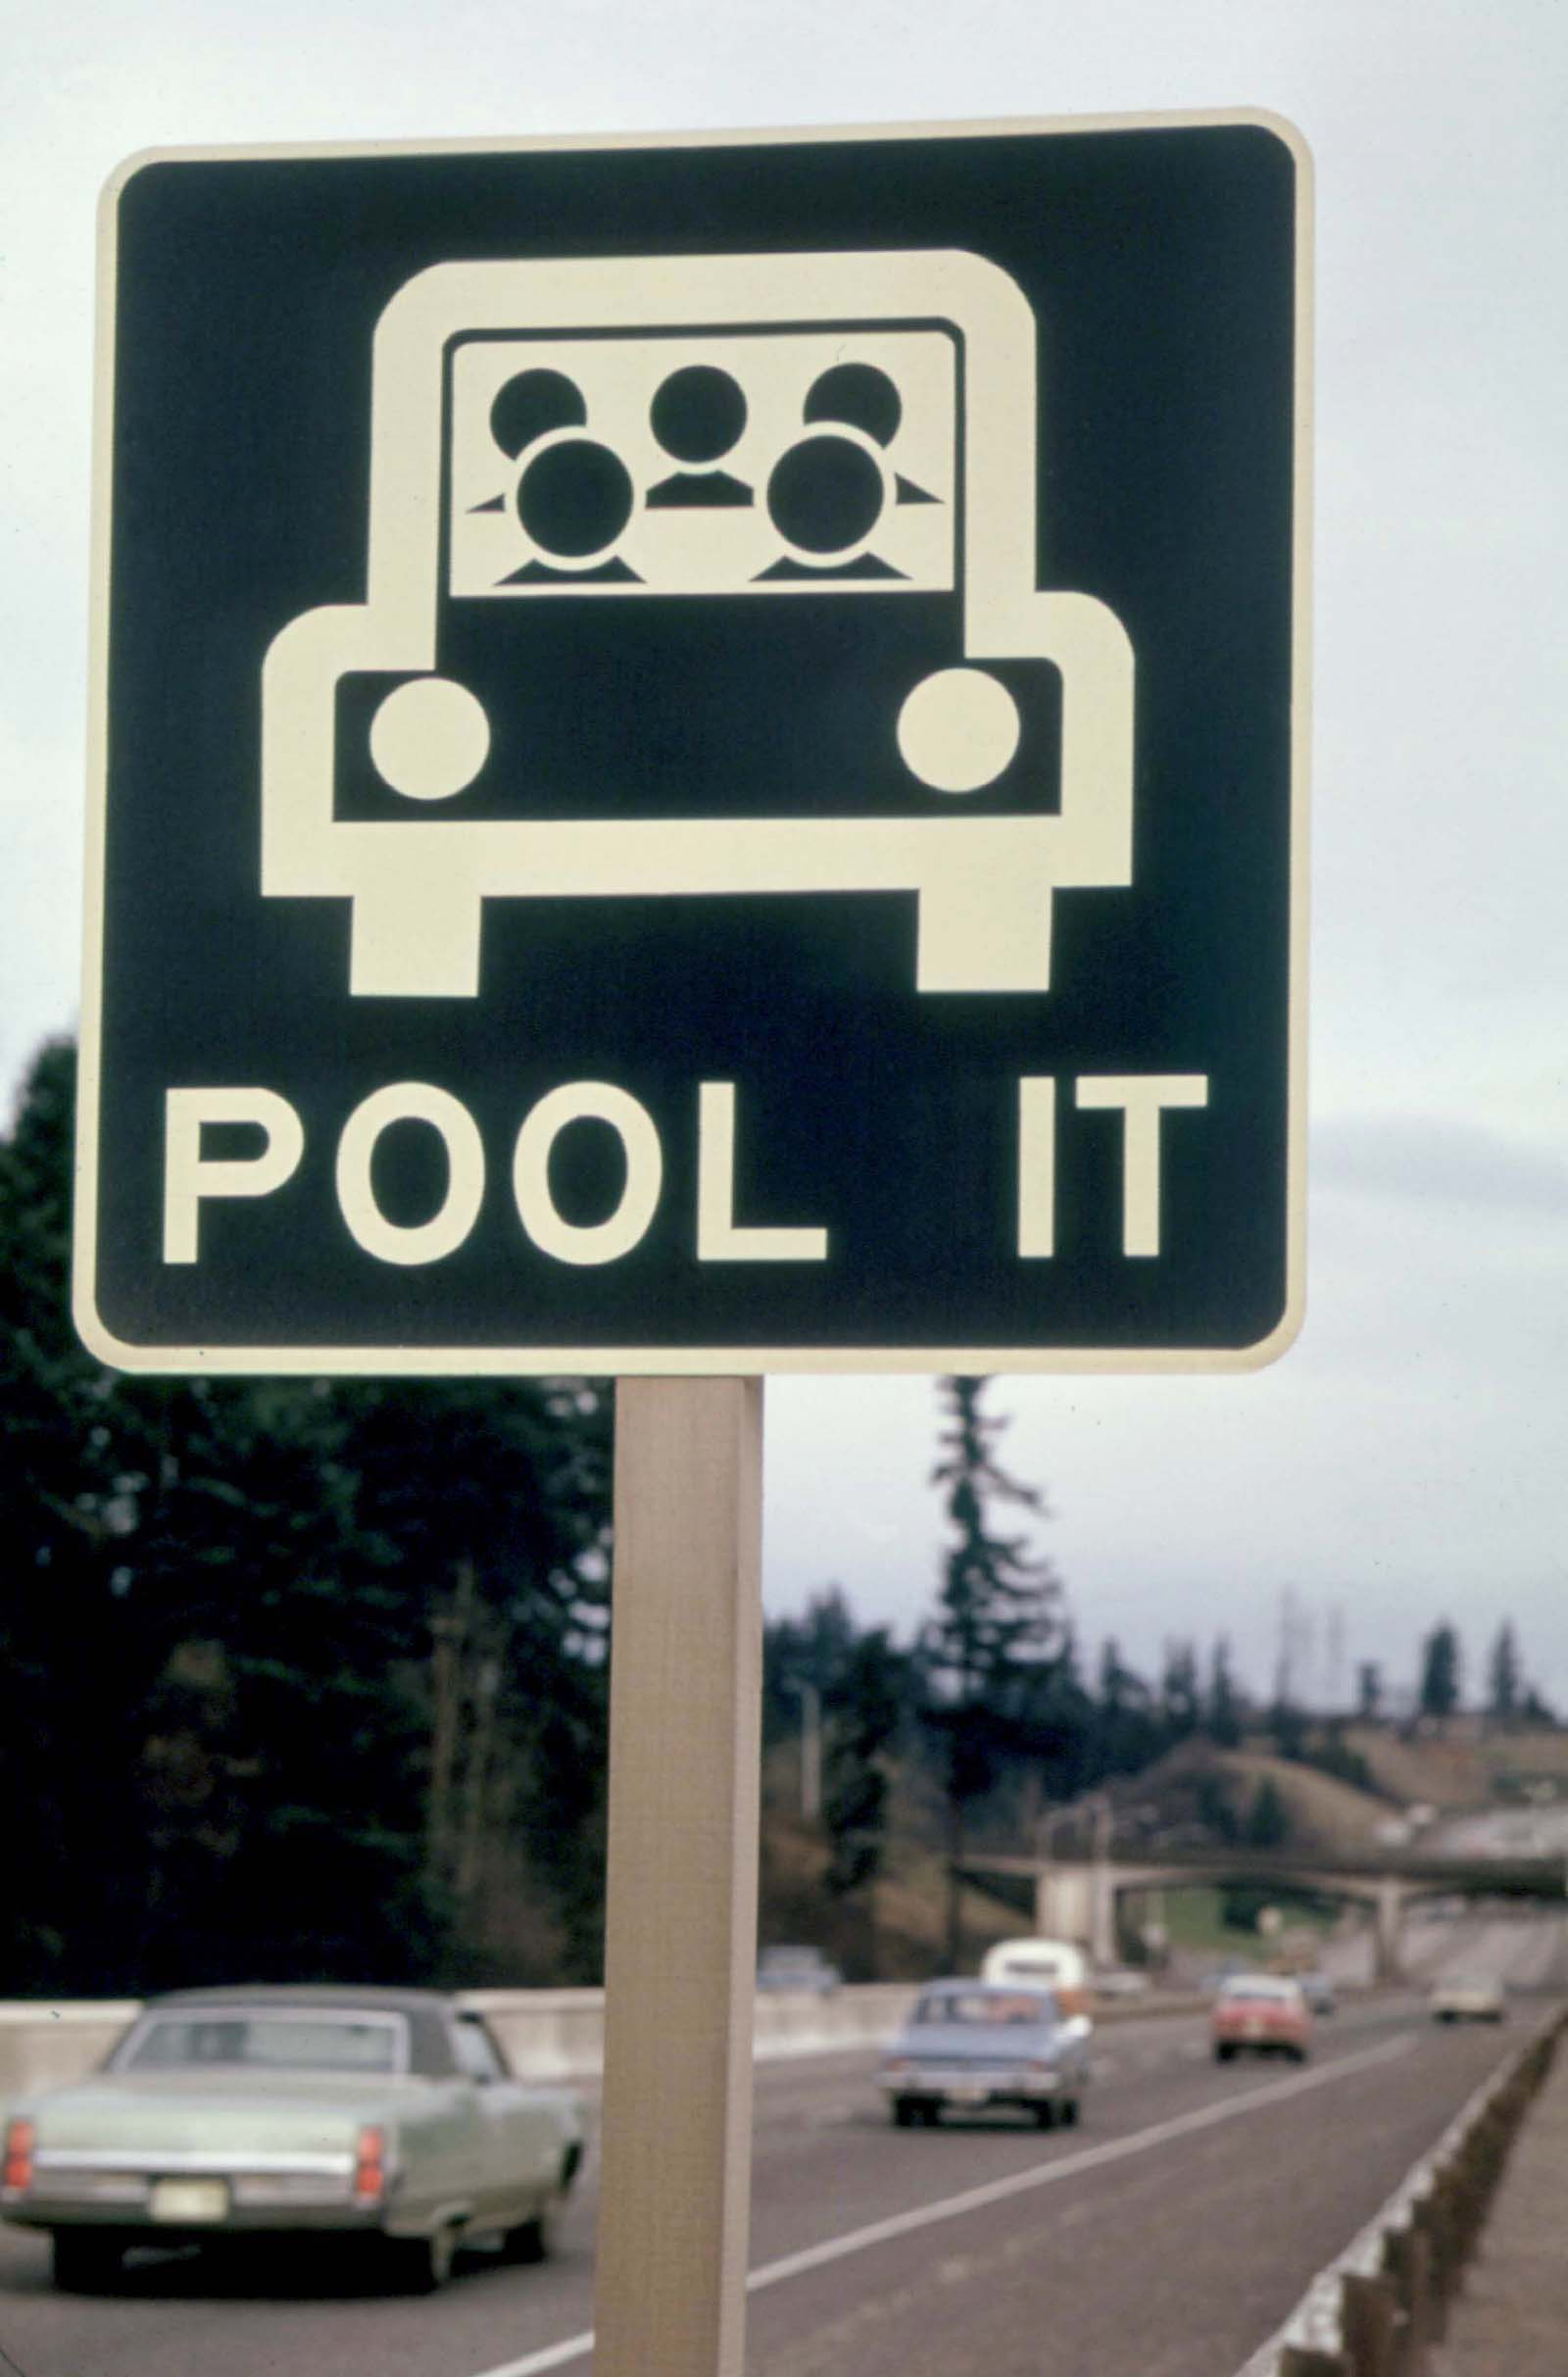 Carpooling sign in 1974 following the 1973 oil crisis